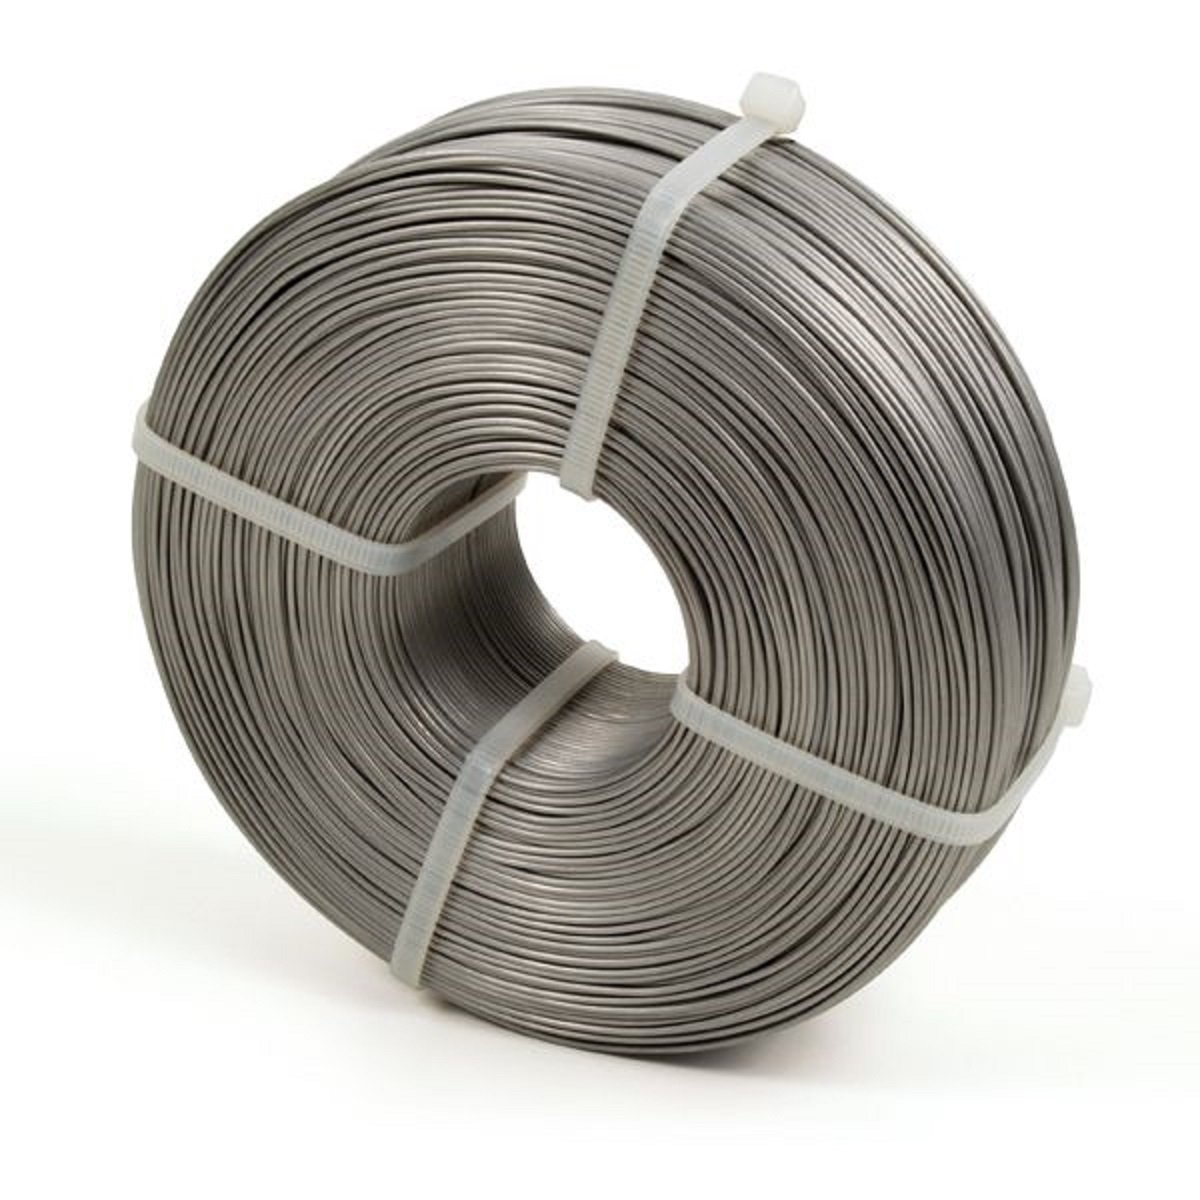 Premier Lashing tie wire Stainless steel 0.045 x 1200 ft type 430